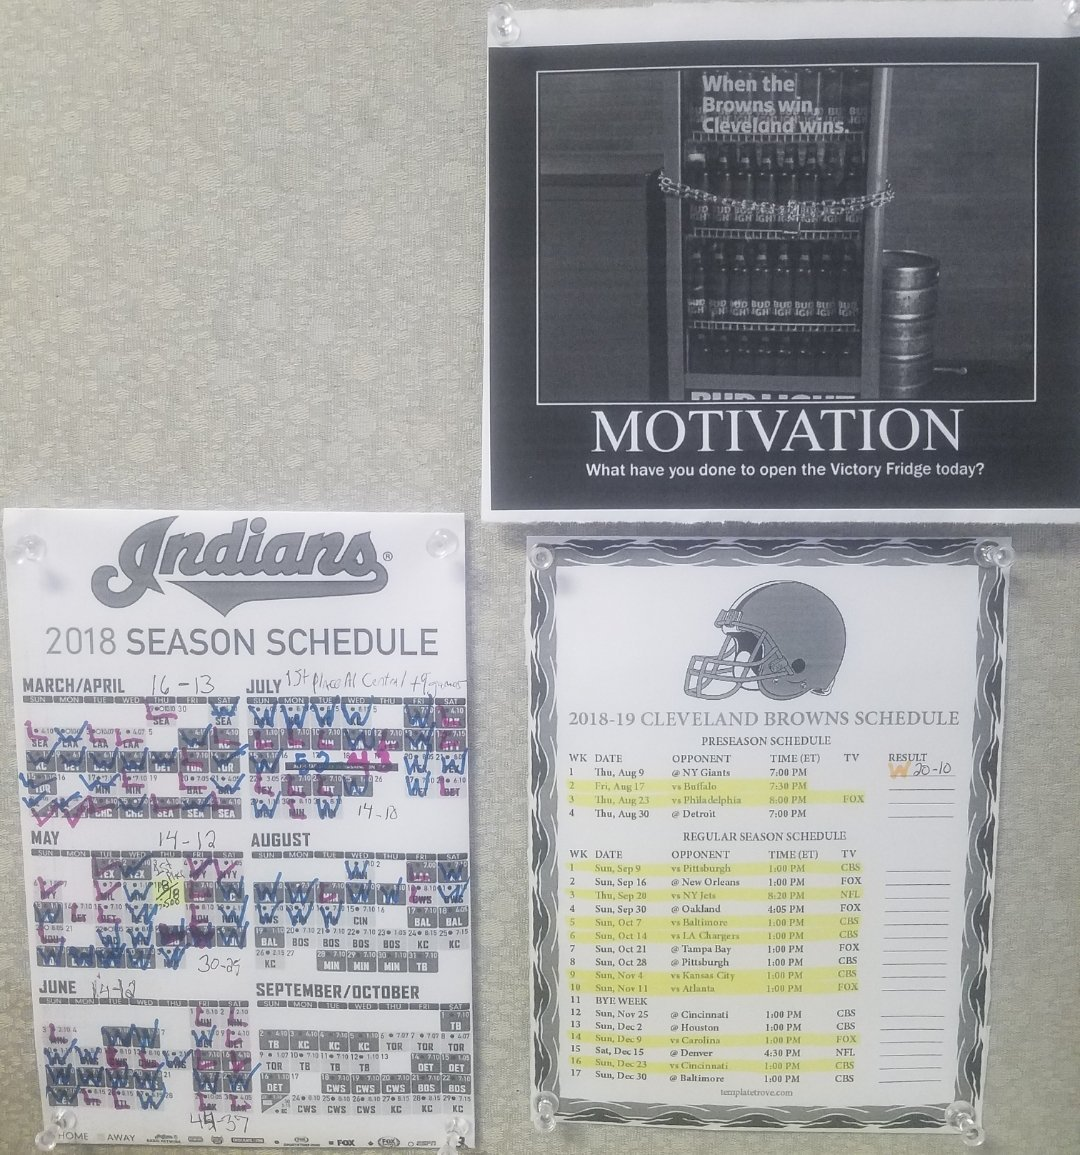 Got my motivation up, thanks @Reflog_18<br>http://pic.twitter.com/veYq1E4oew